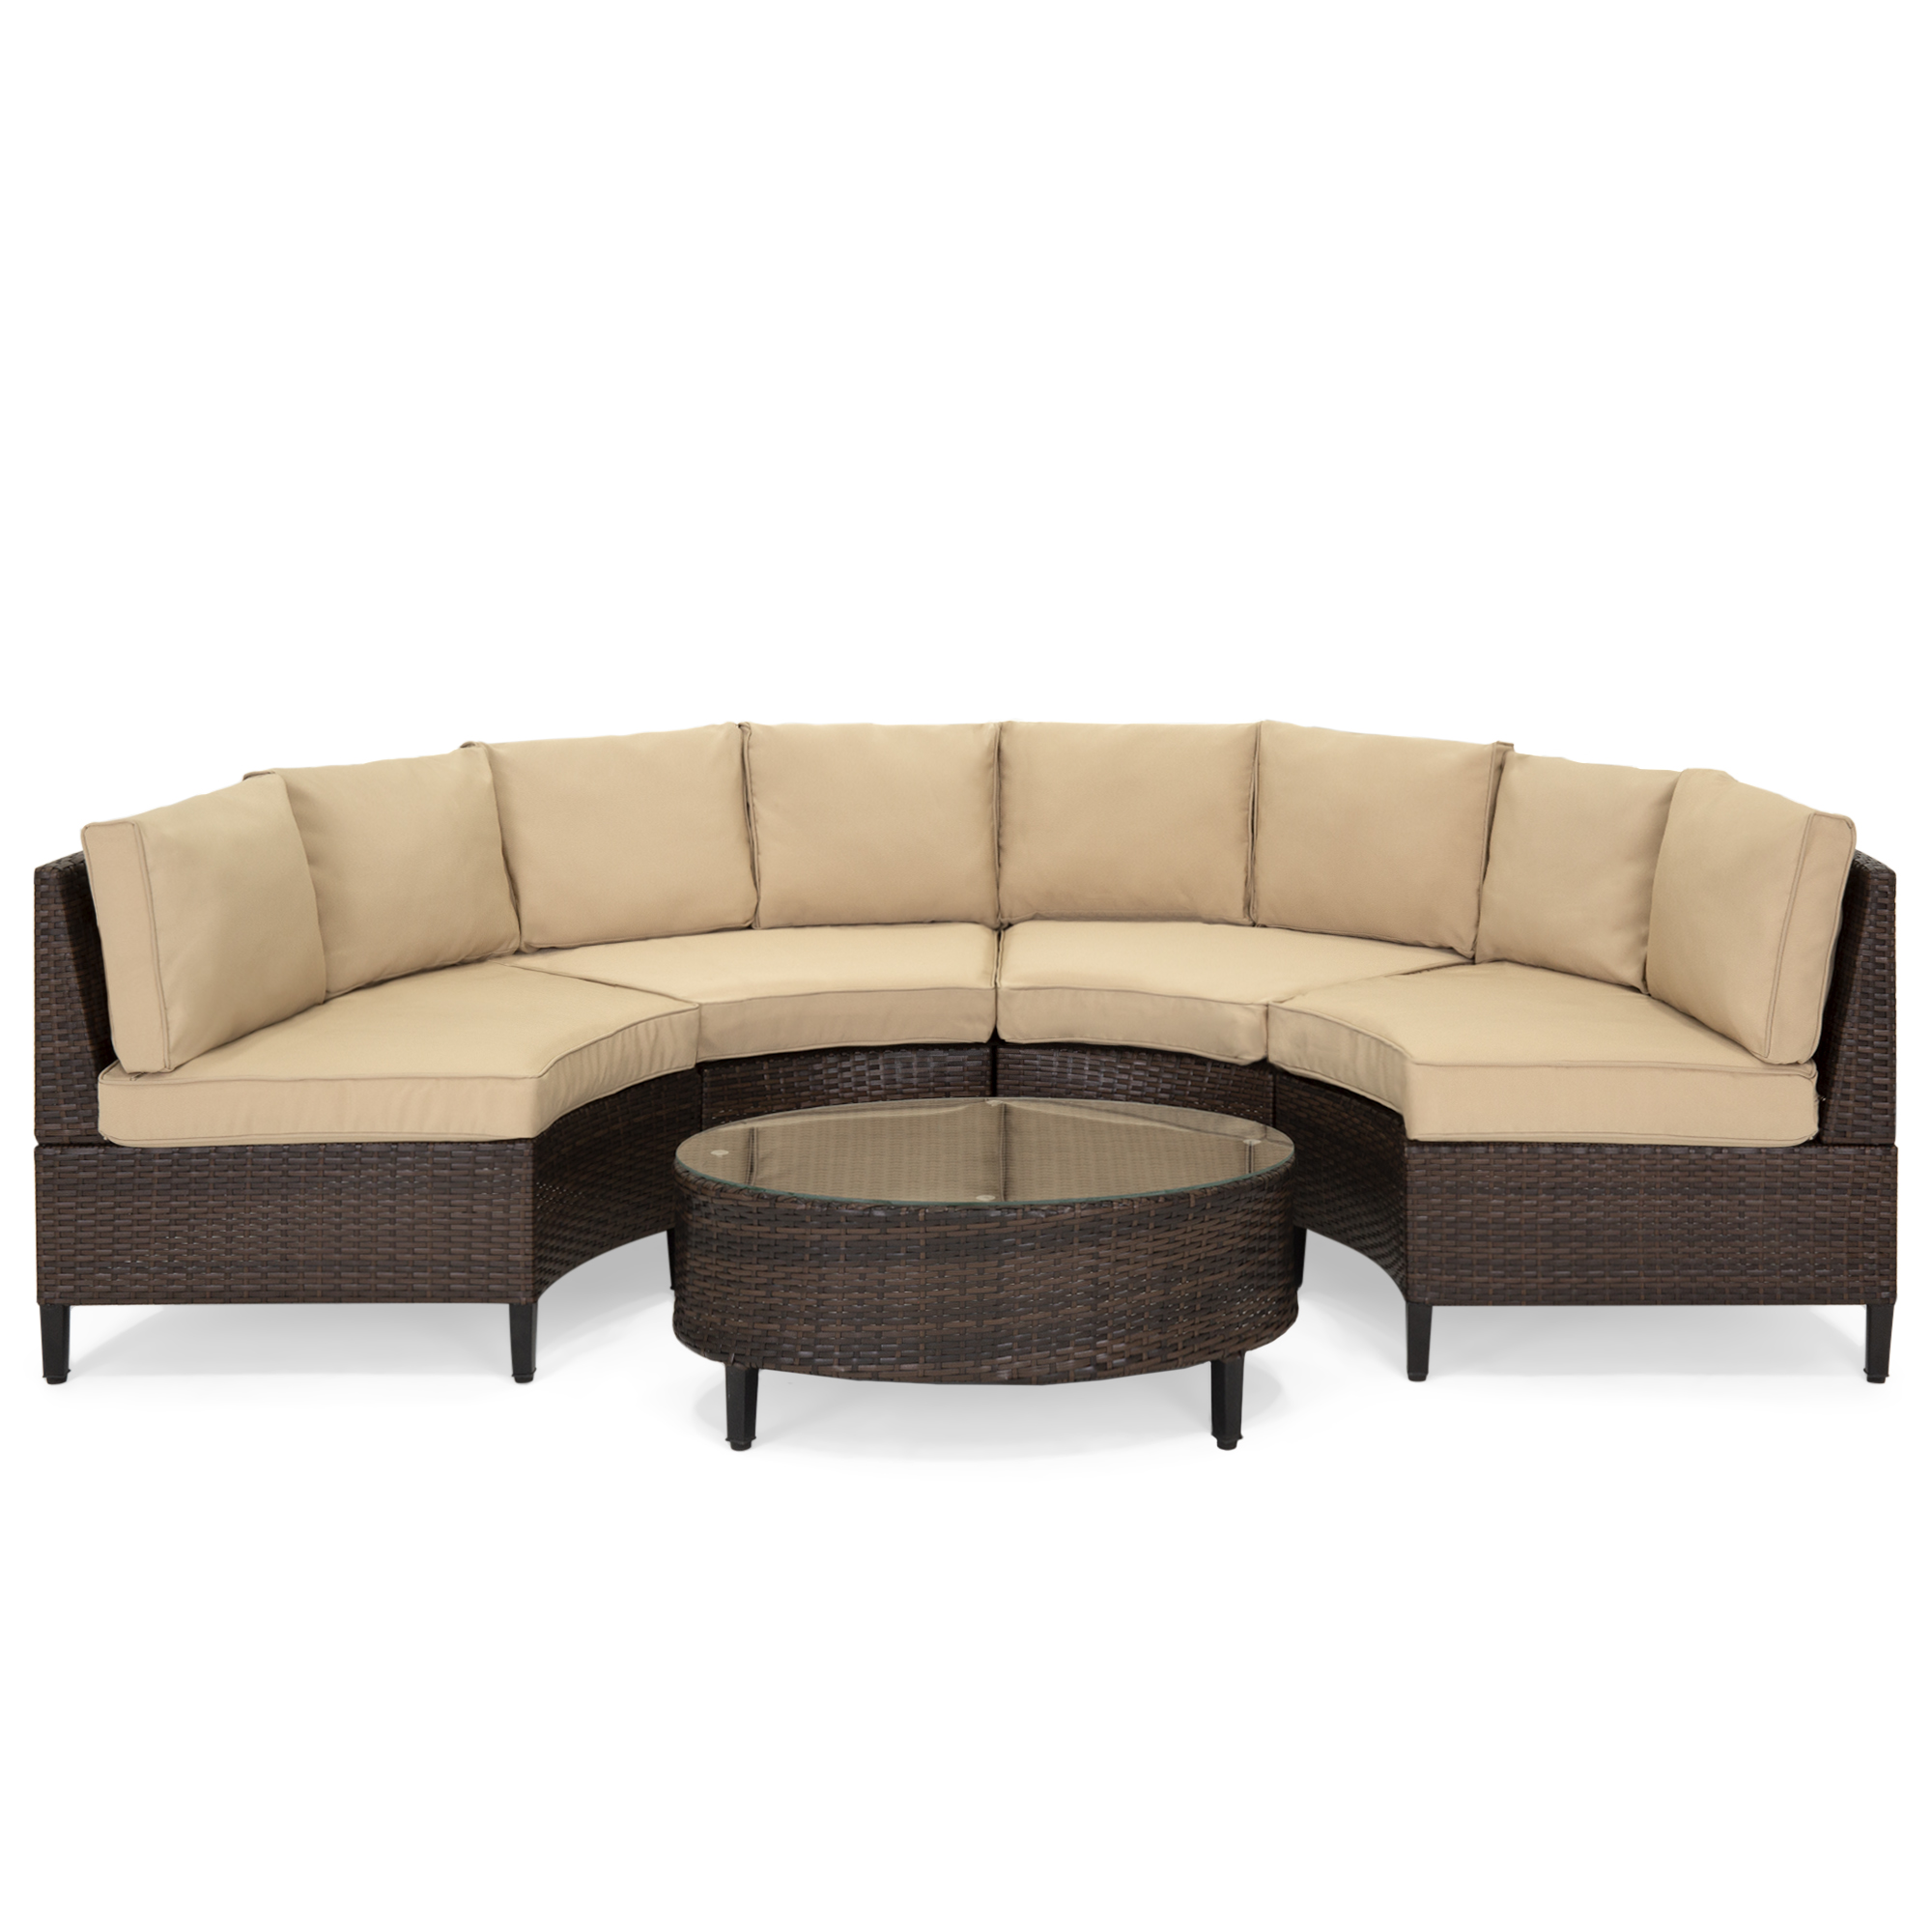 Rattan Sofa Occasion Best Choice Products 5 Piece Modern Outdoor Patio Semi